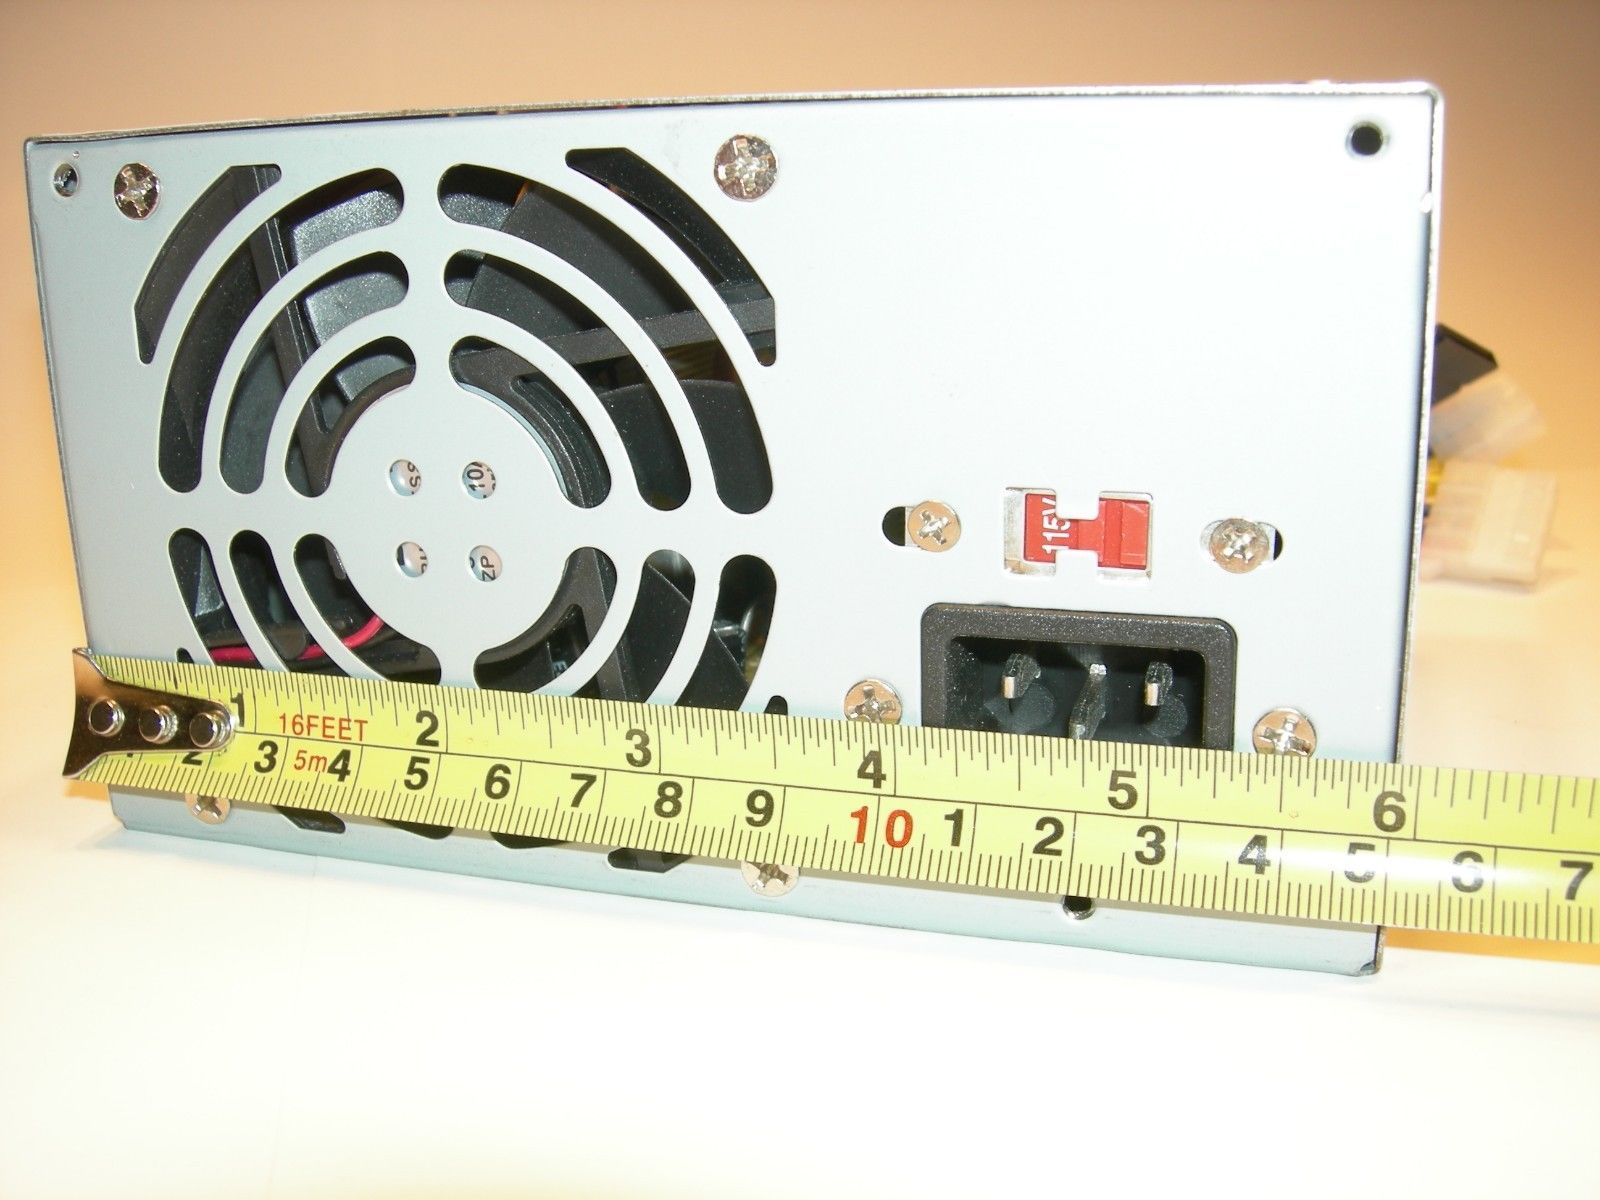 New PC Power Supply Upgrade for Sparkle ATX-300GUS Desktop Computer